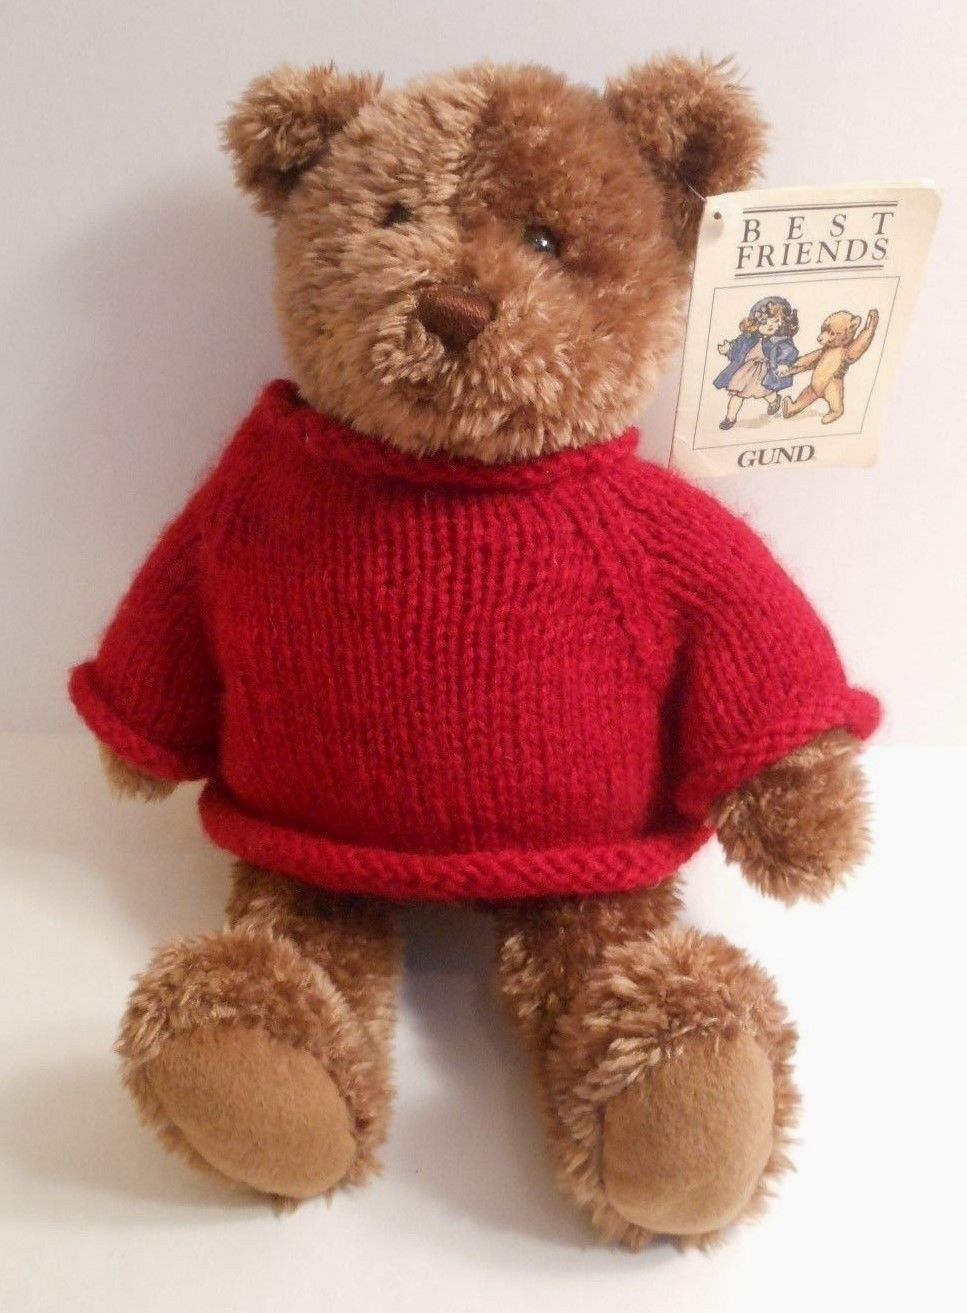 Gund Best Friends Bear Red Sweater 12 Plush And 50 Similar Items Pusheen Holiday With Written Note Inside Of Tag